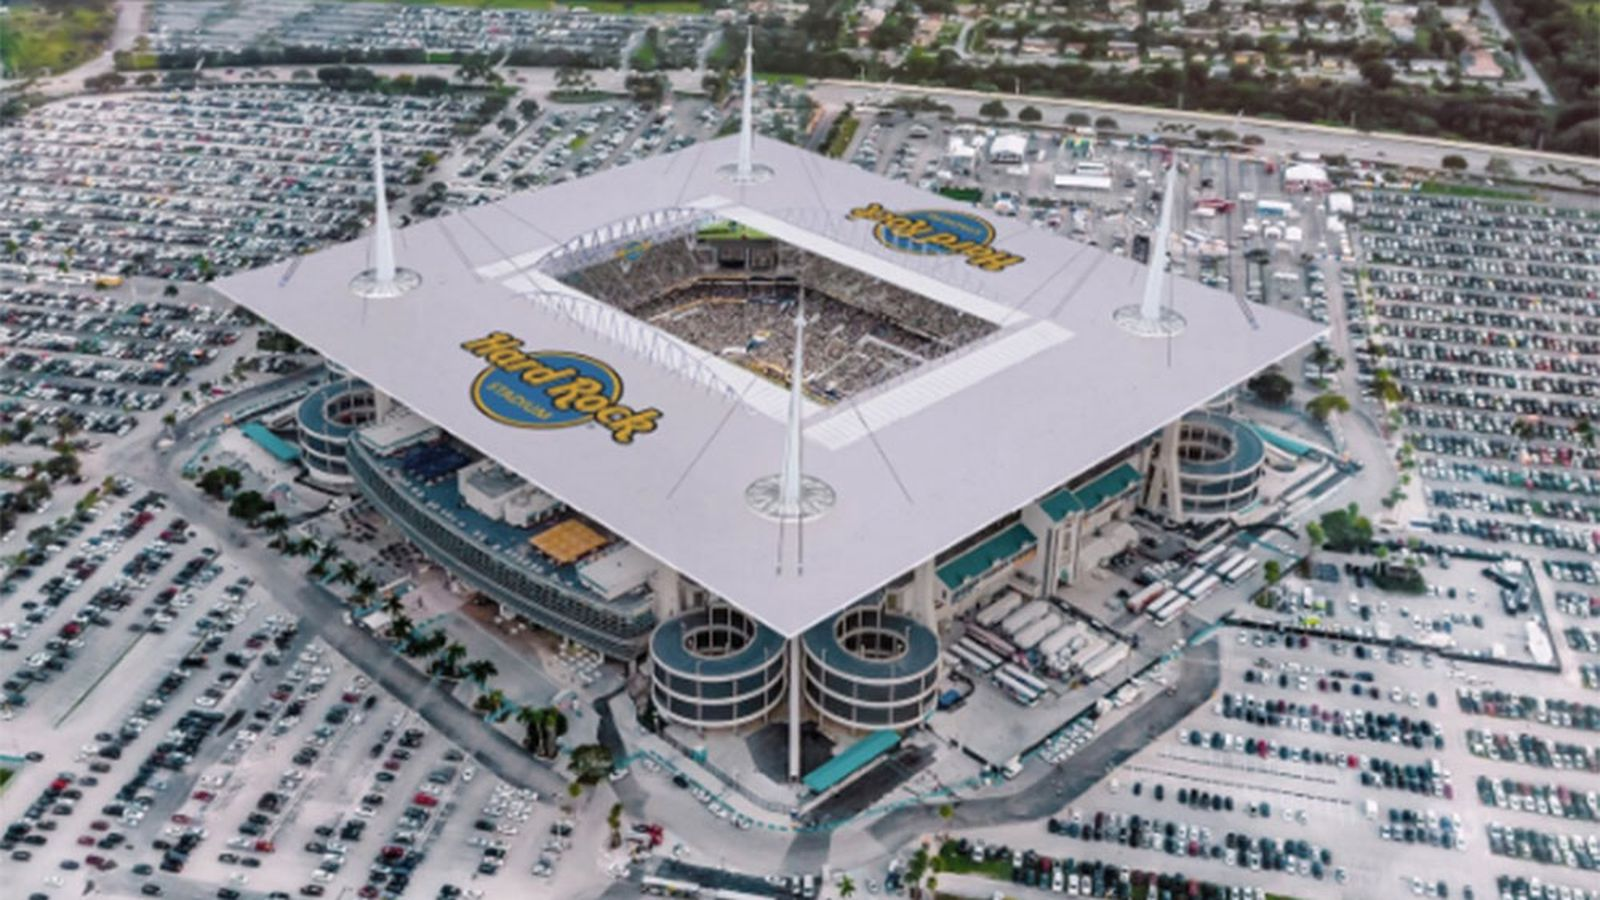 a program makeover is exactly what miami needed - state of